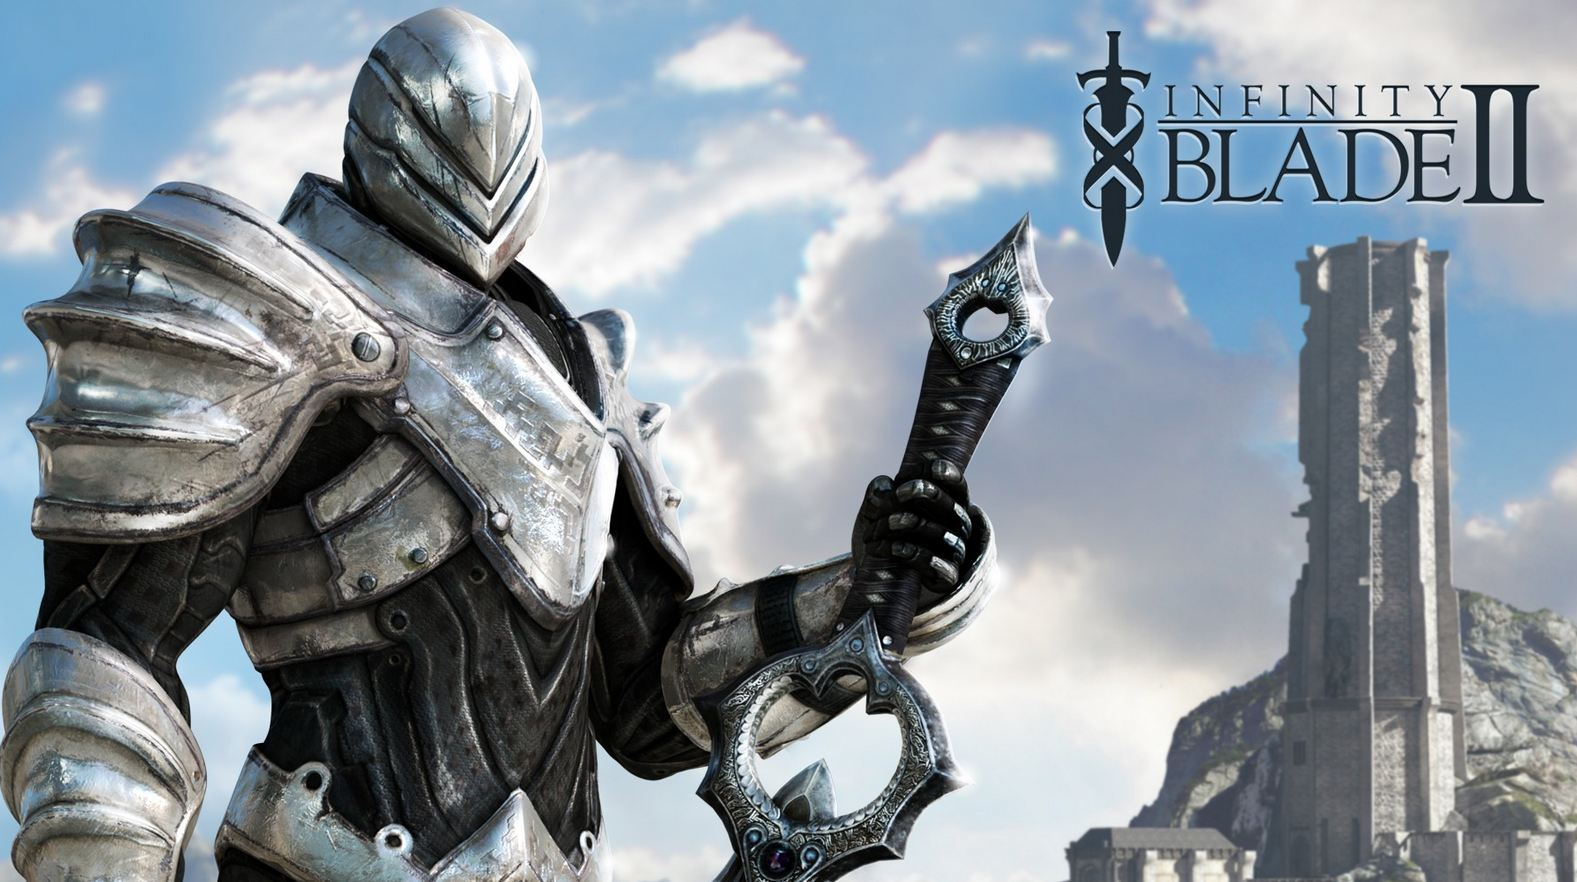 Infinity blade android market